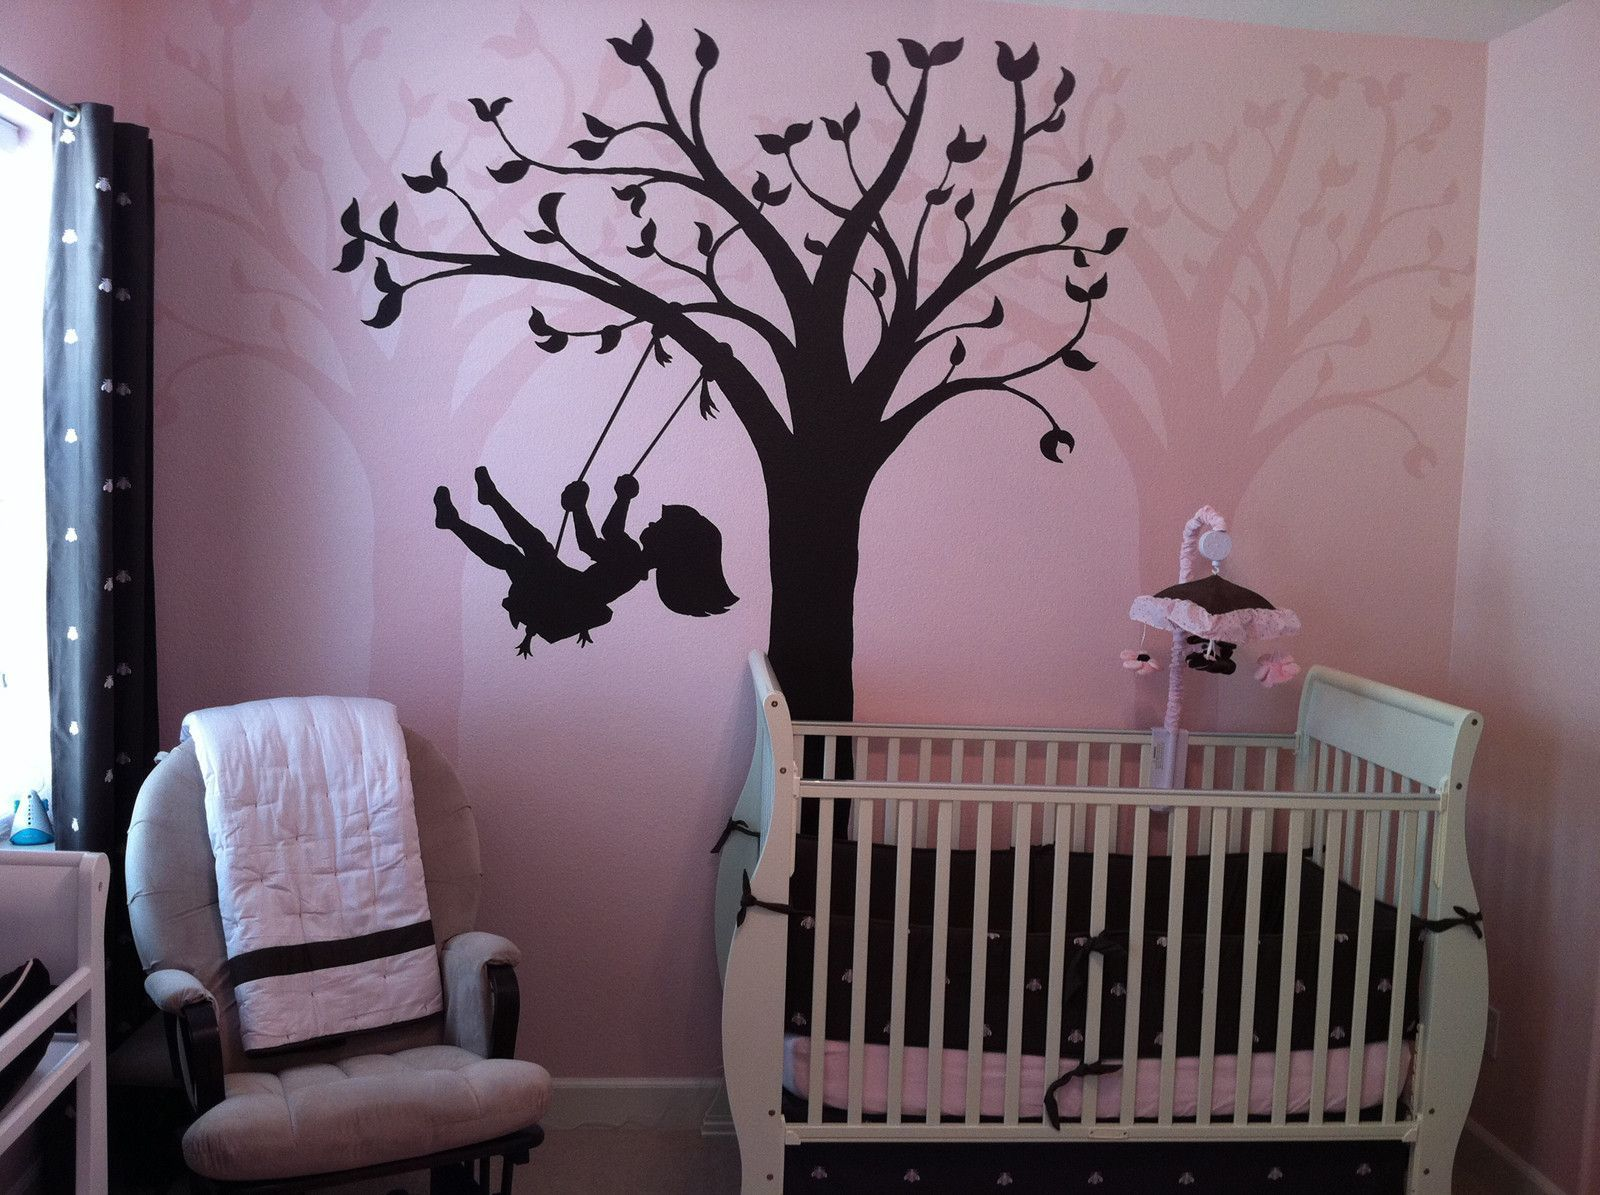 This Silhouette Swing Wall Mural Looks Adorable With Pink And Green Leaves.  Beautiful Little Girl Idea